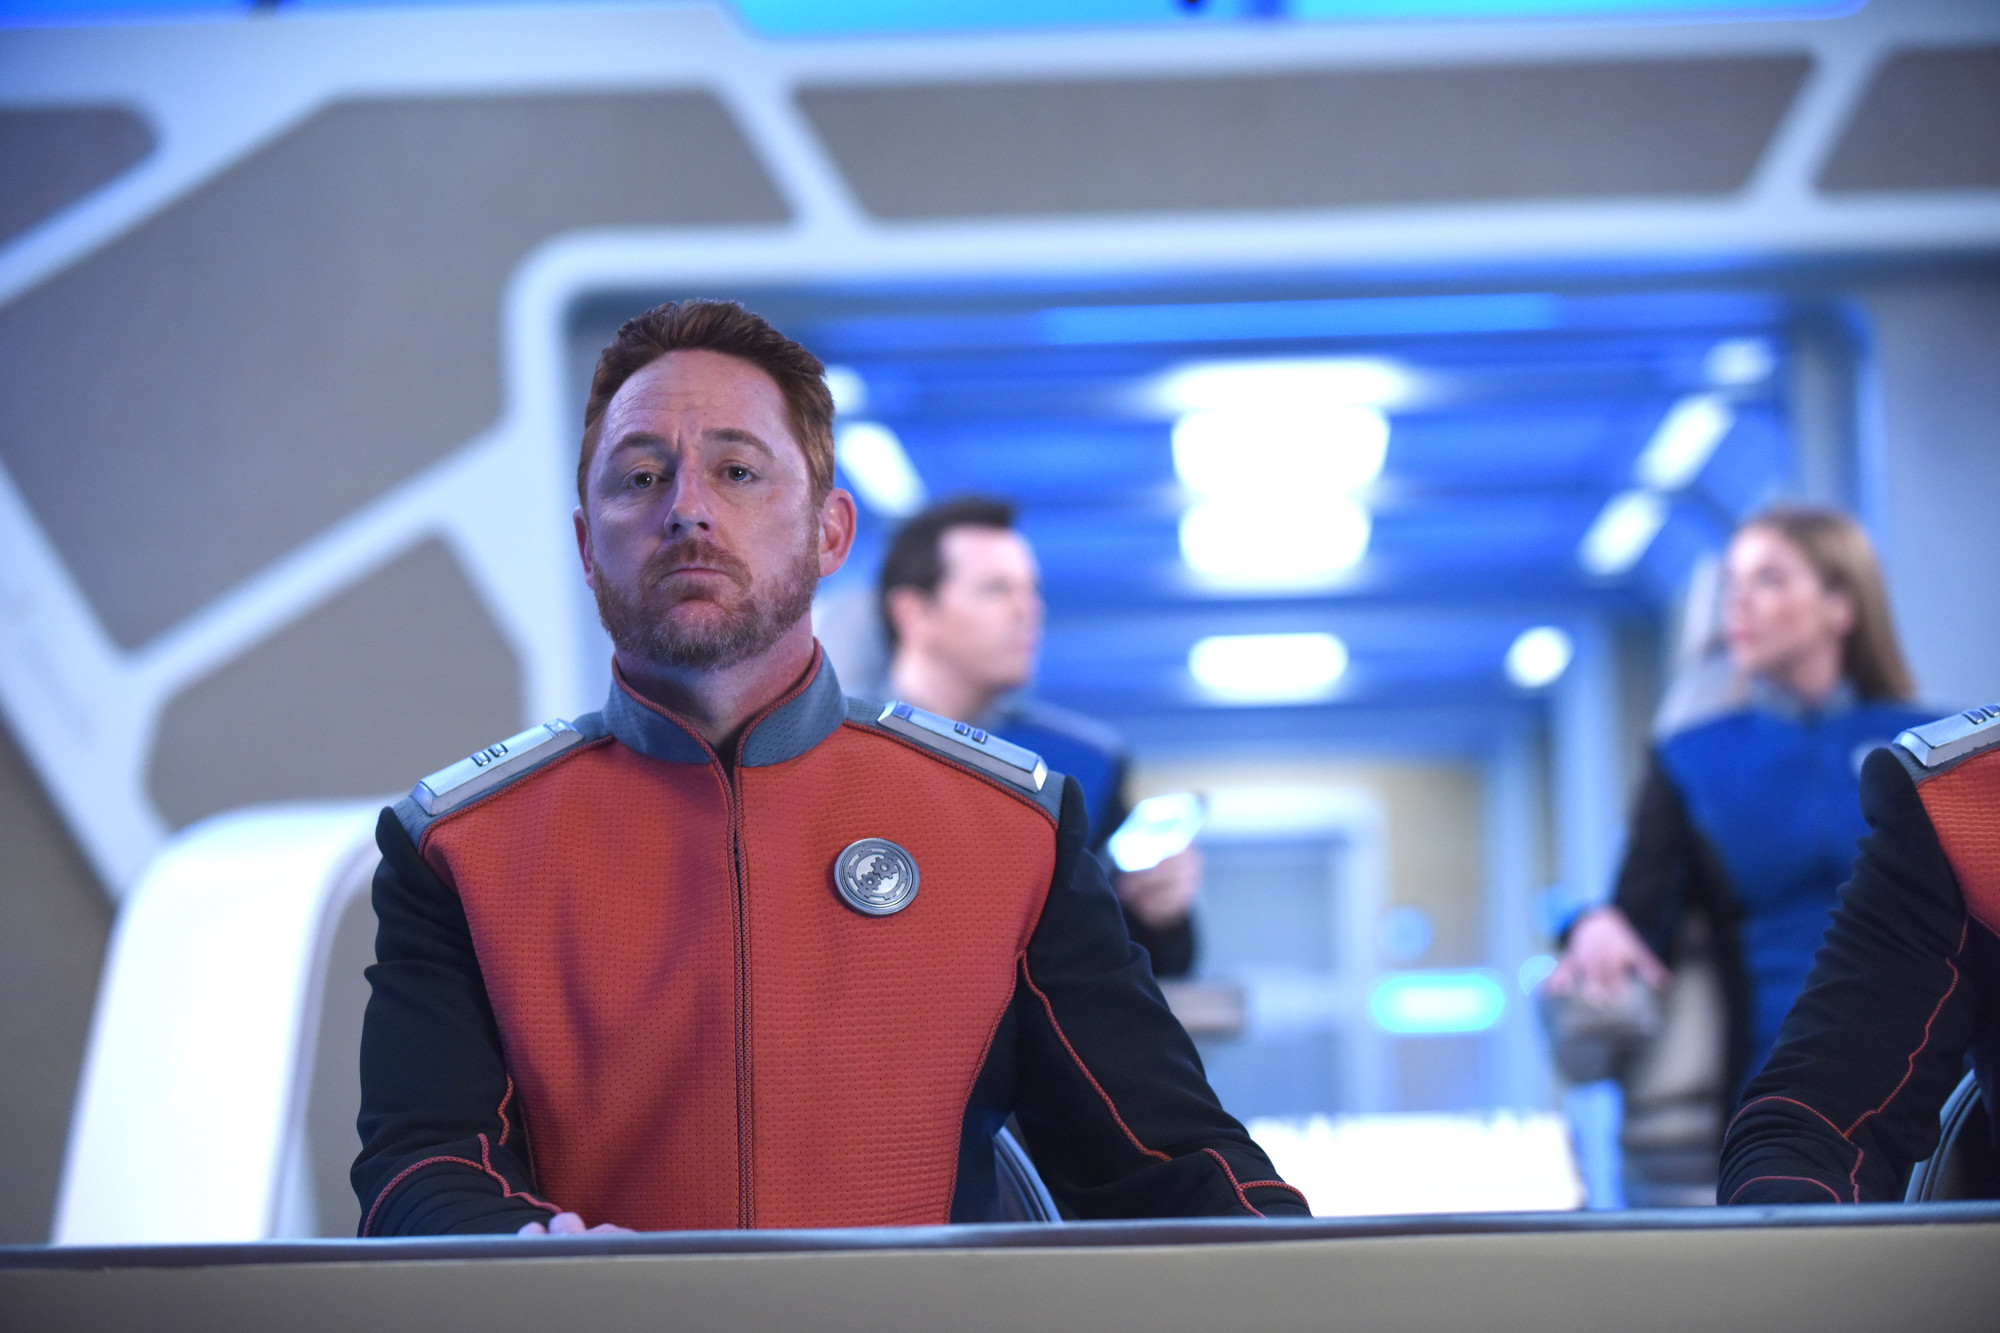 Orville_Ep203-Sc2-RayM_0273_webres